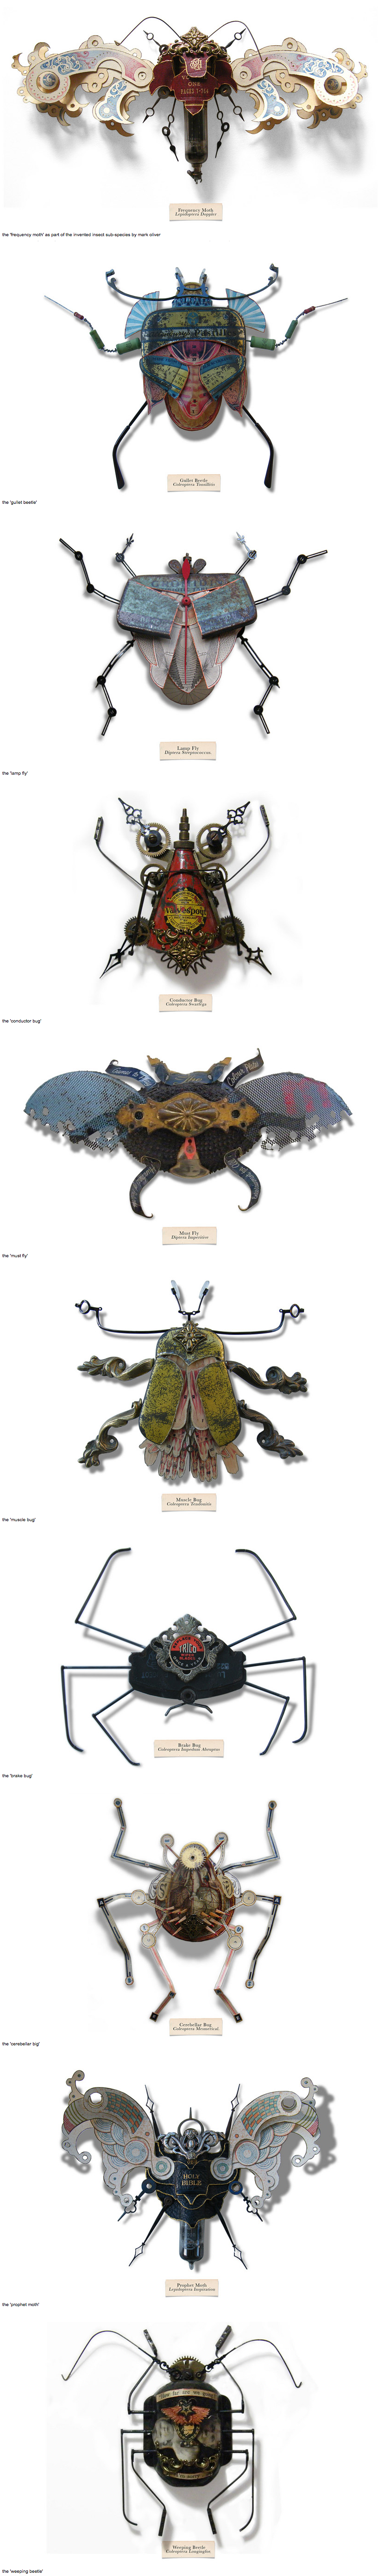 Litter Bugs, insect sculptures made out of found objects by British artist Mark Oliver. Each bug is named after the materials from which it was made (eg: watch parts were used to make the Time Fly)